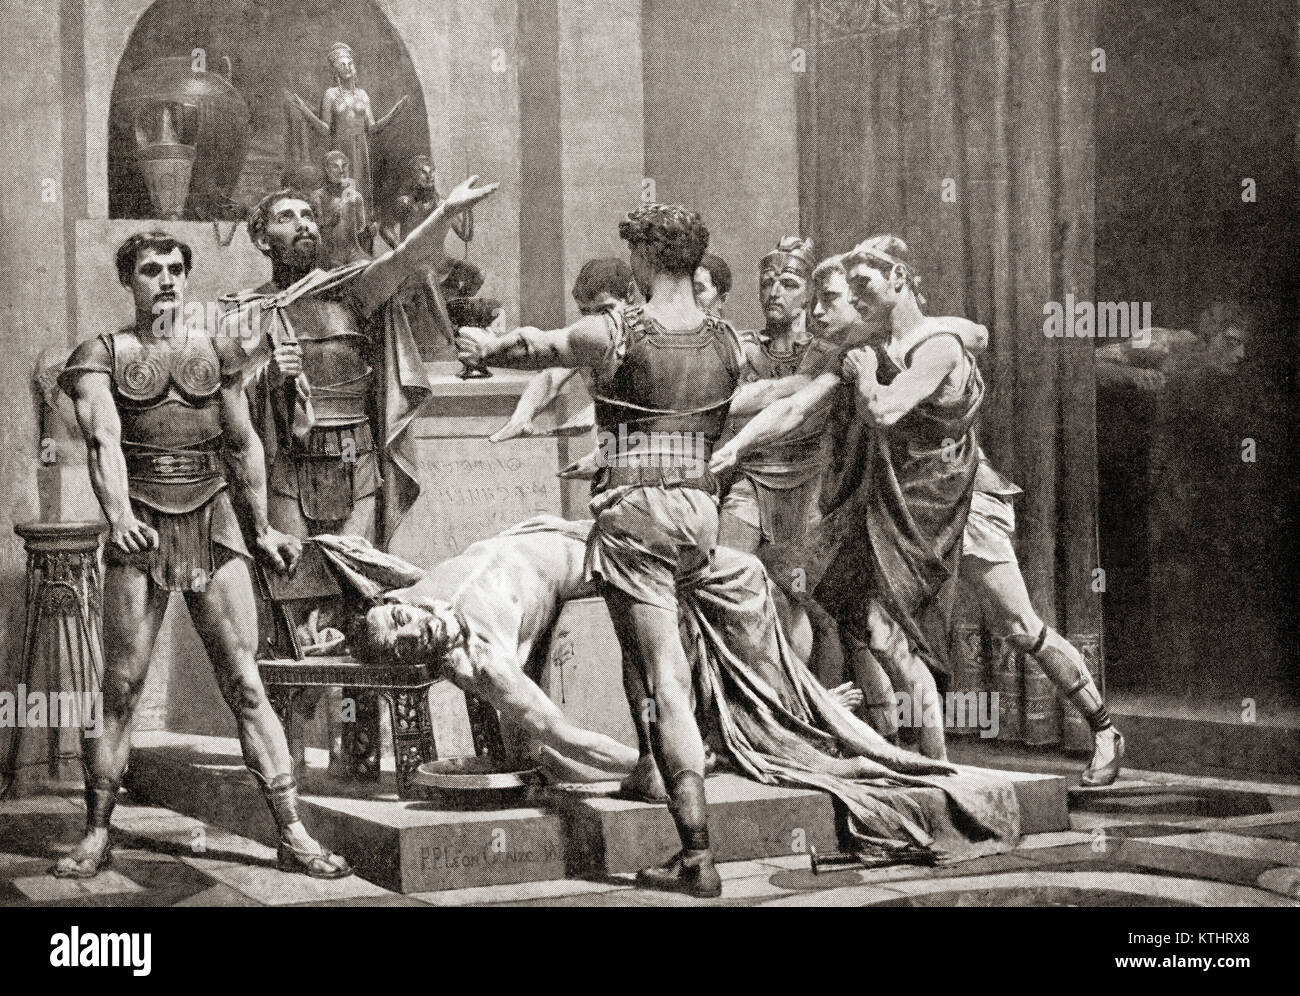 After the expulsion of the Tarquins some young Roman patricians plotted the restoration of the exiled kings, to - Stock Image